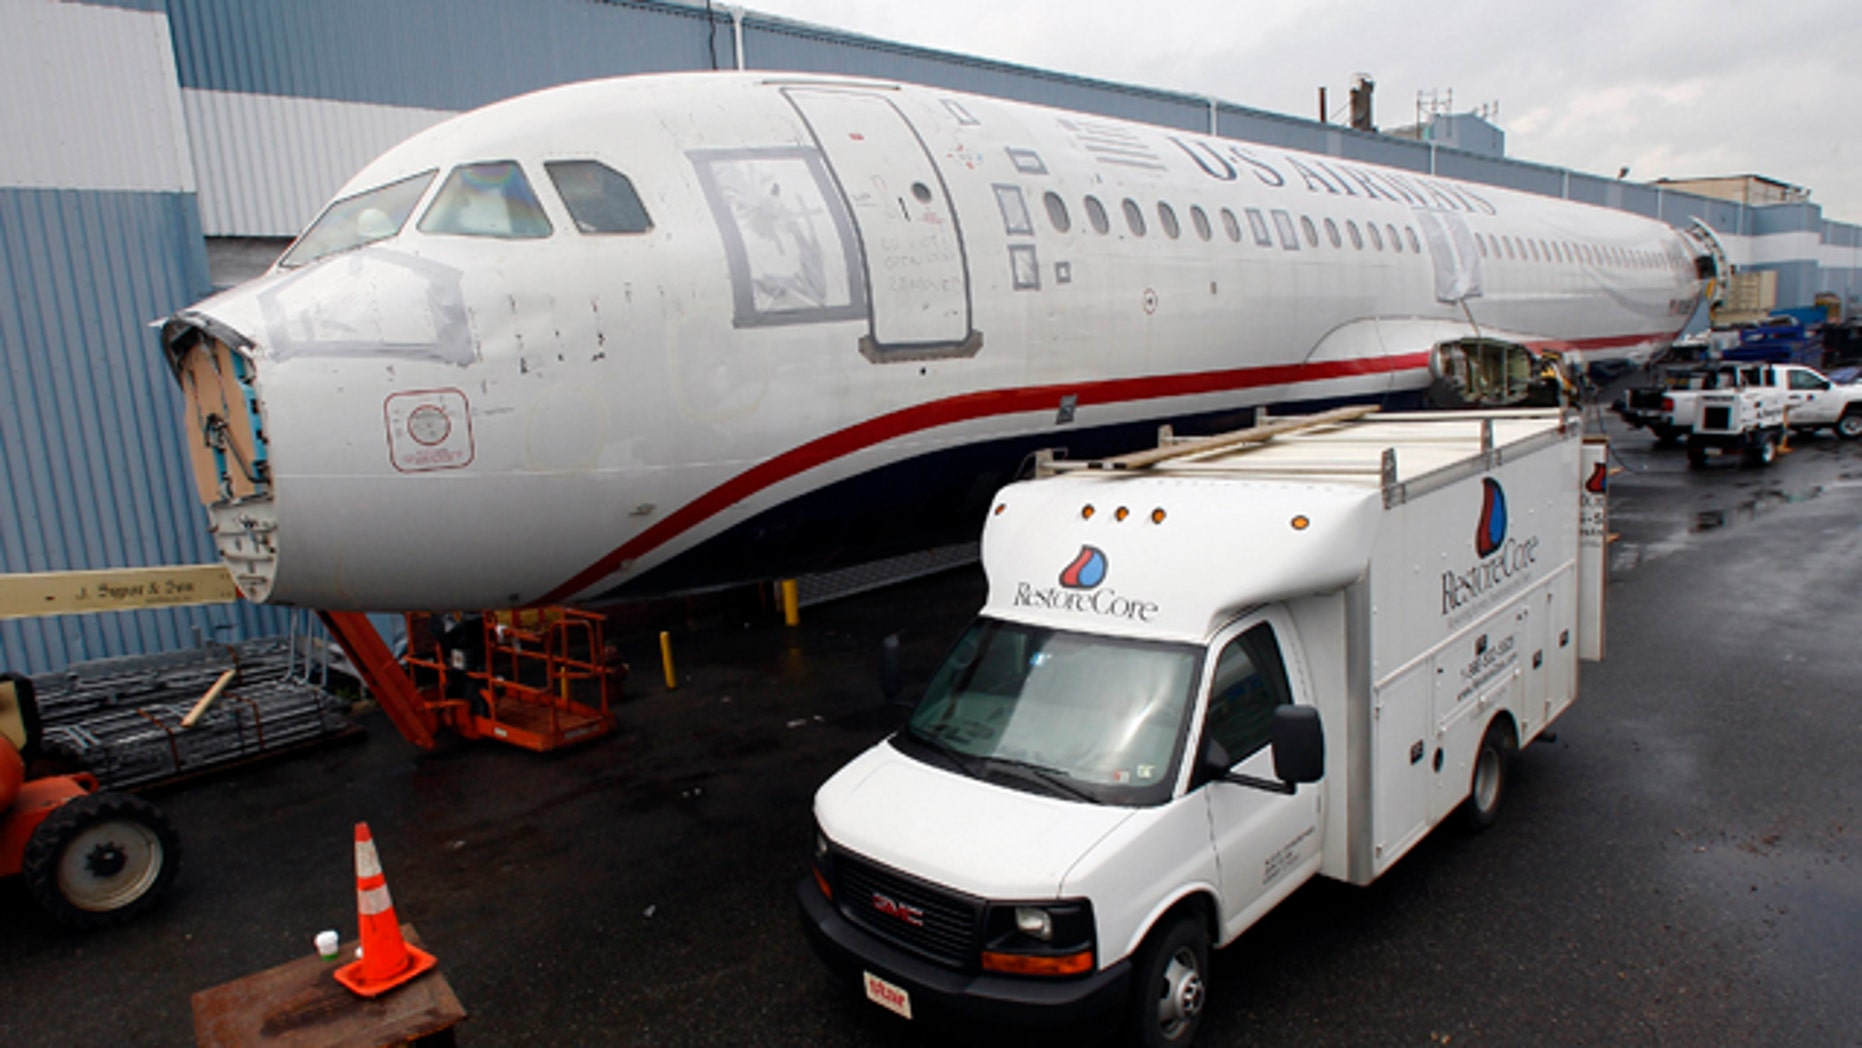 May 20: The US Airways jet, flight 1549, sits outside a warehouse at J. Supor and Sons in Harrison, N.J. The plane that splash-landed in the Hudson River in 2009, making a national hero of pilot, is getting a final once-over before it makes its last journey.